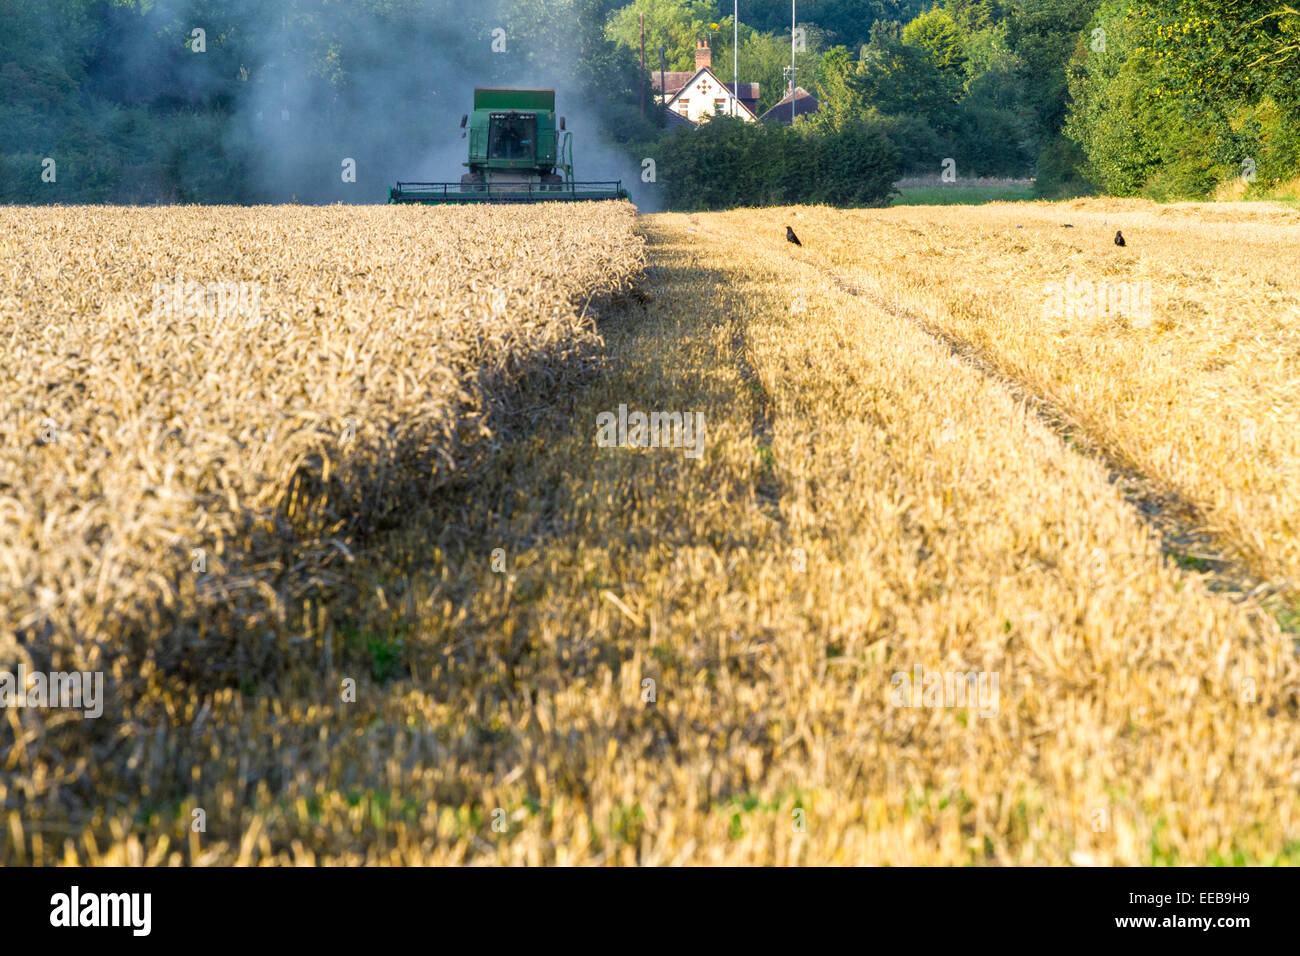 Wheat field at harvest time with a combine harvester approaching from the distance, Burton Joyce, Nottinghamshire, - Stock Image